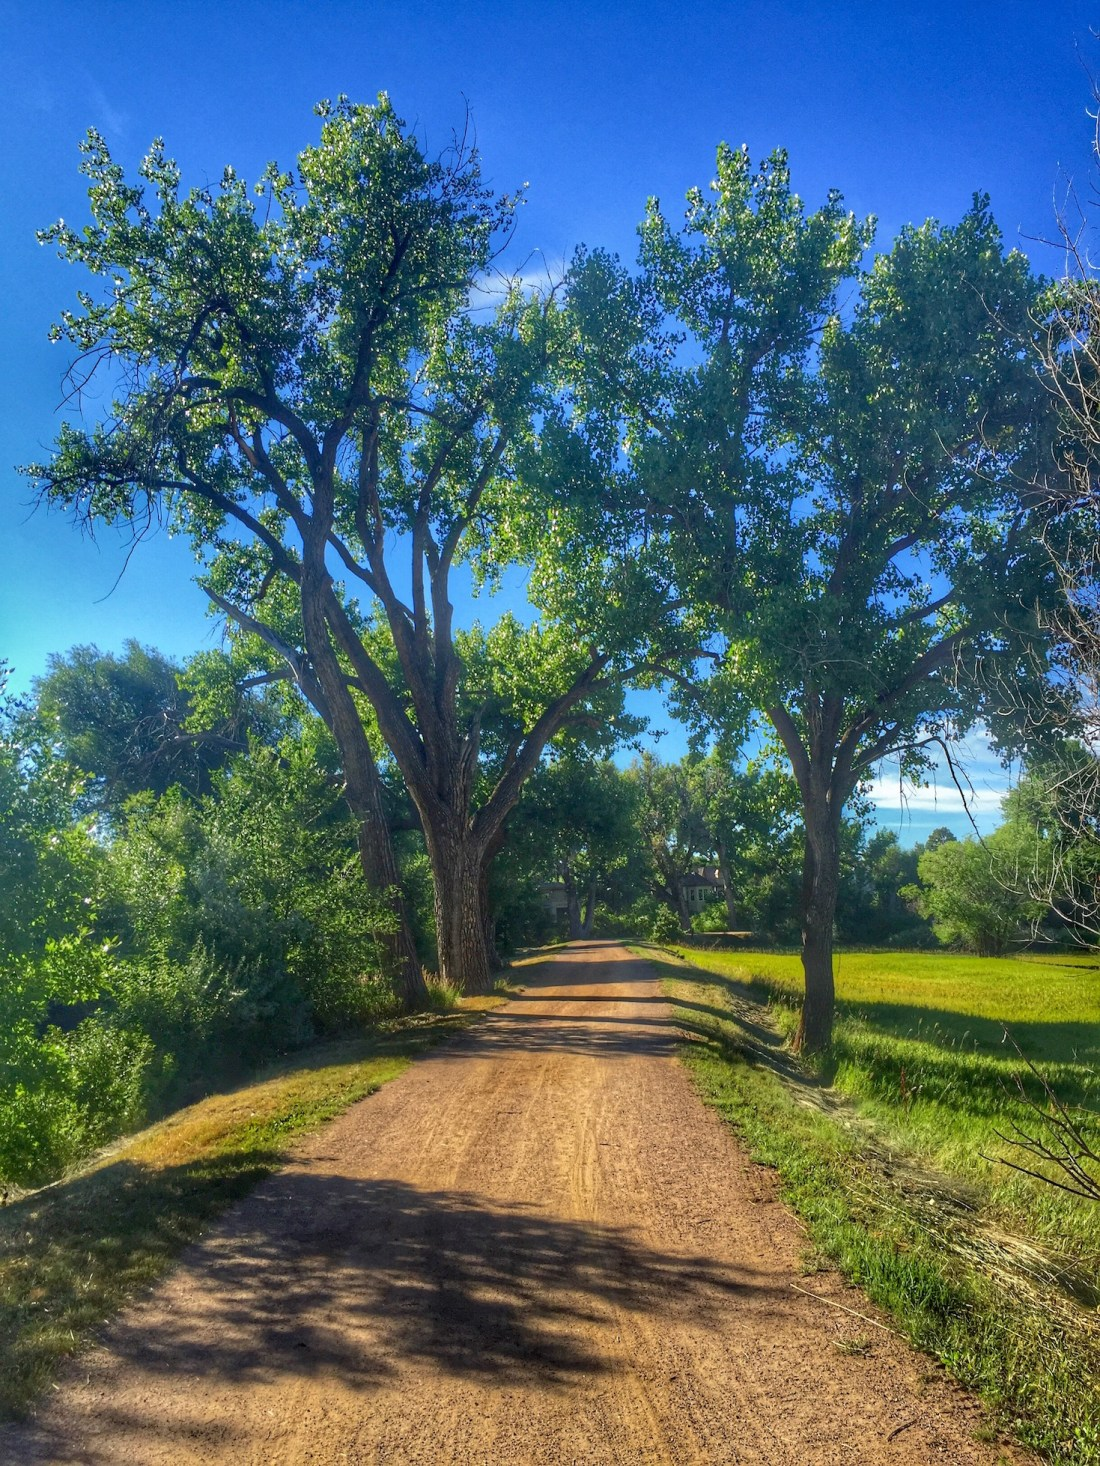 On the High Road of Denver's High Line Canal Trail